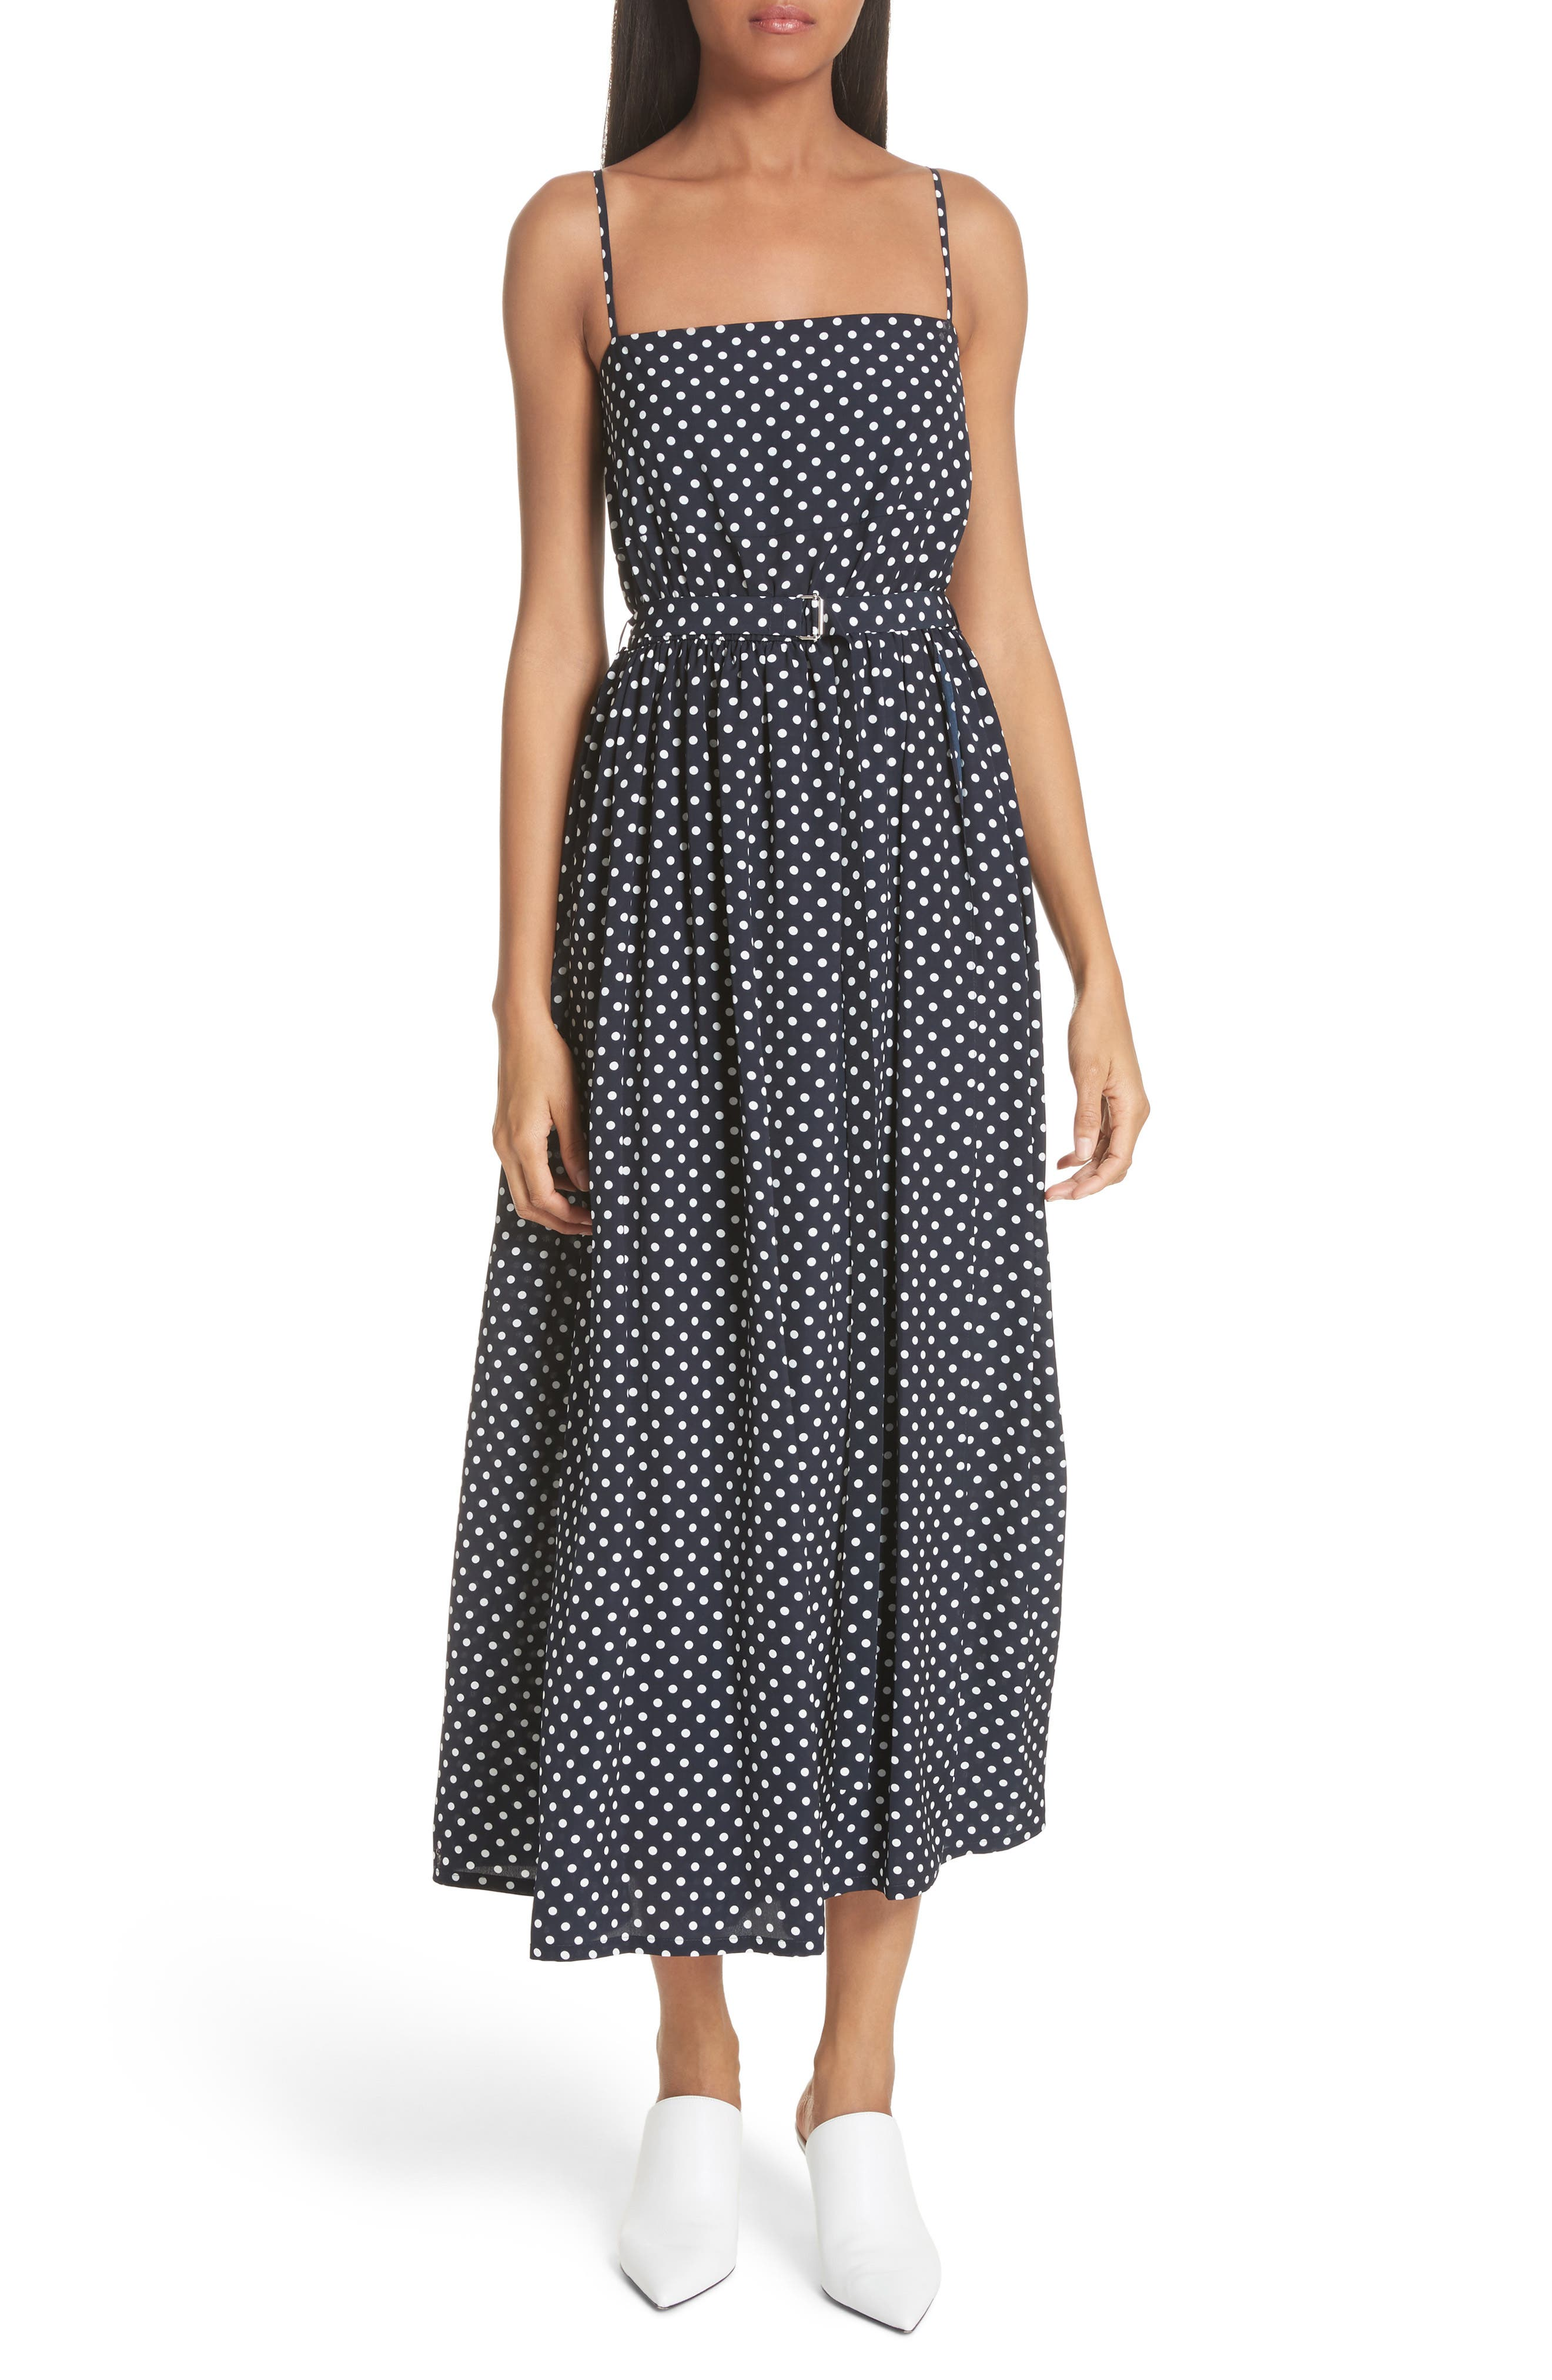 Polka Dot Midi Dress,                         Main,                         color, Navy